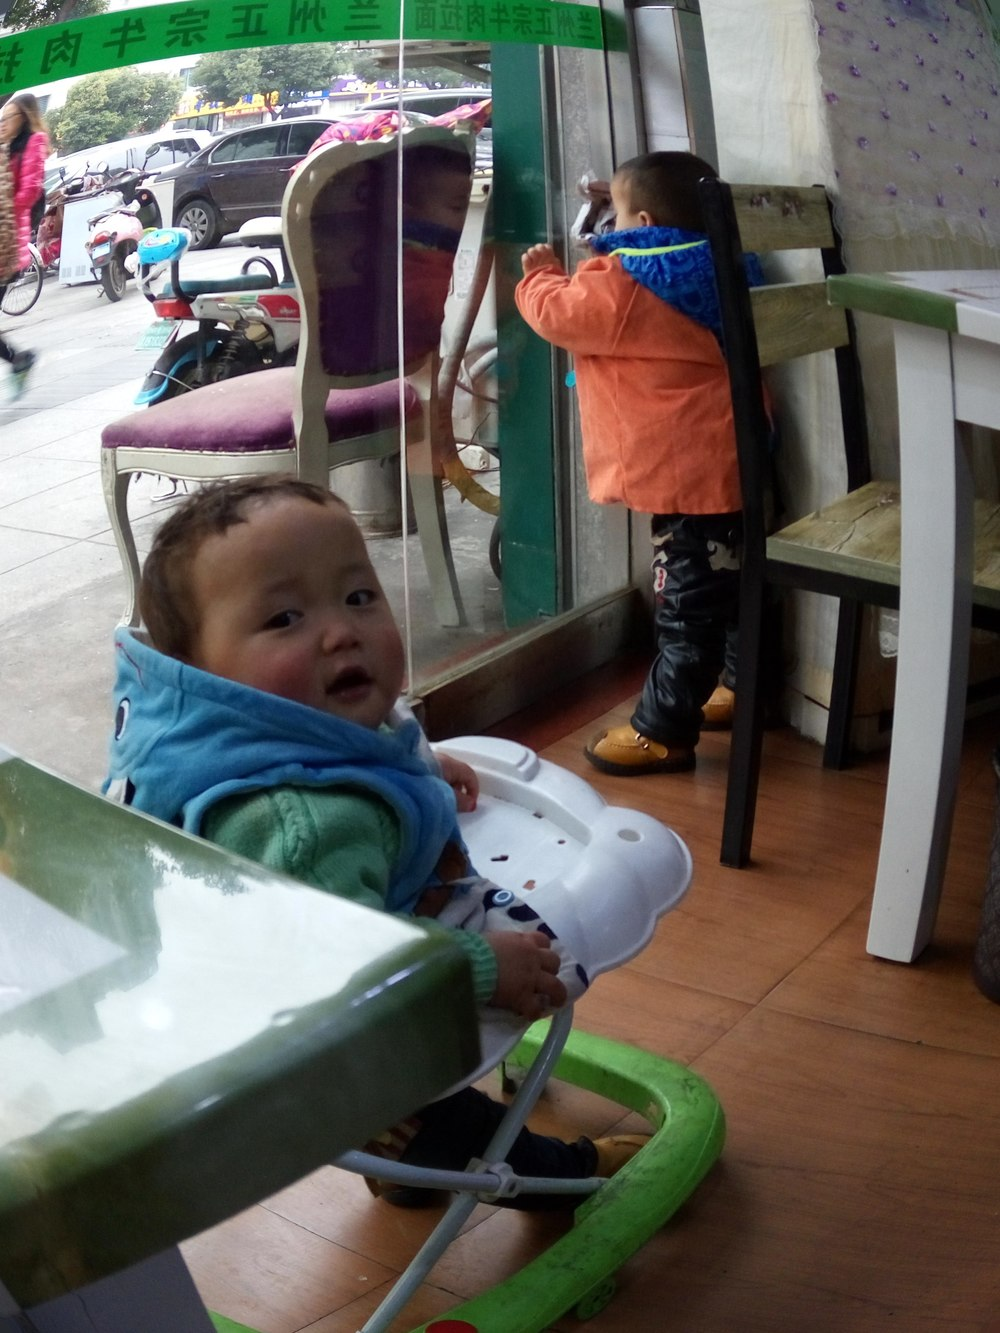 The noodle maker's baby bounces about while the owner's son looks out.